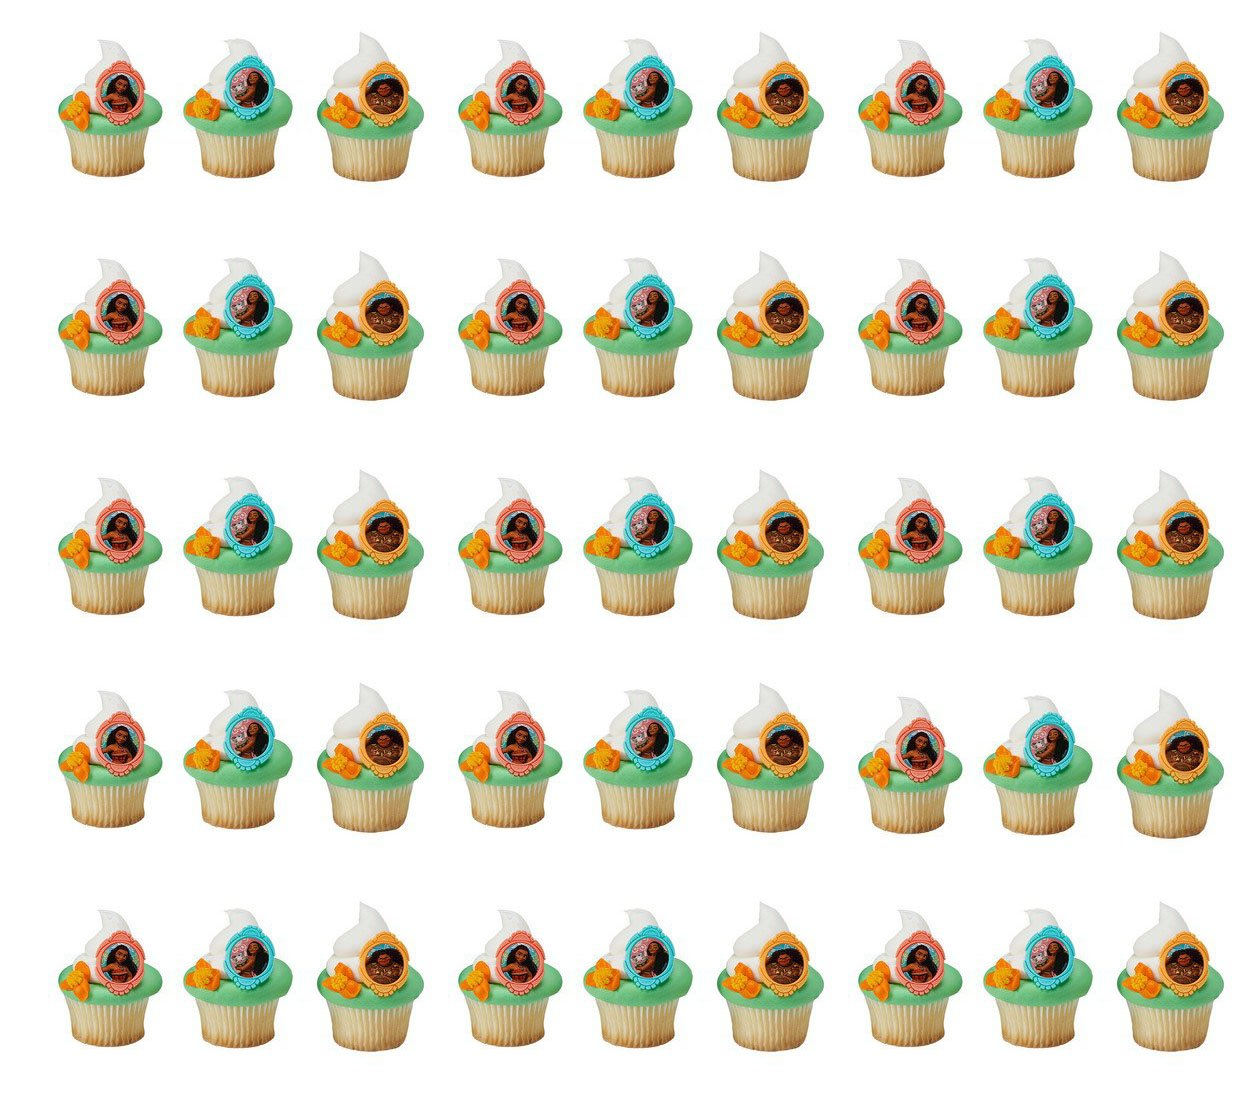 Moana Voyagers Cupcake Rings 2 Bakery Supplies 48 pc